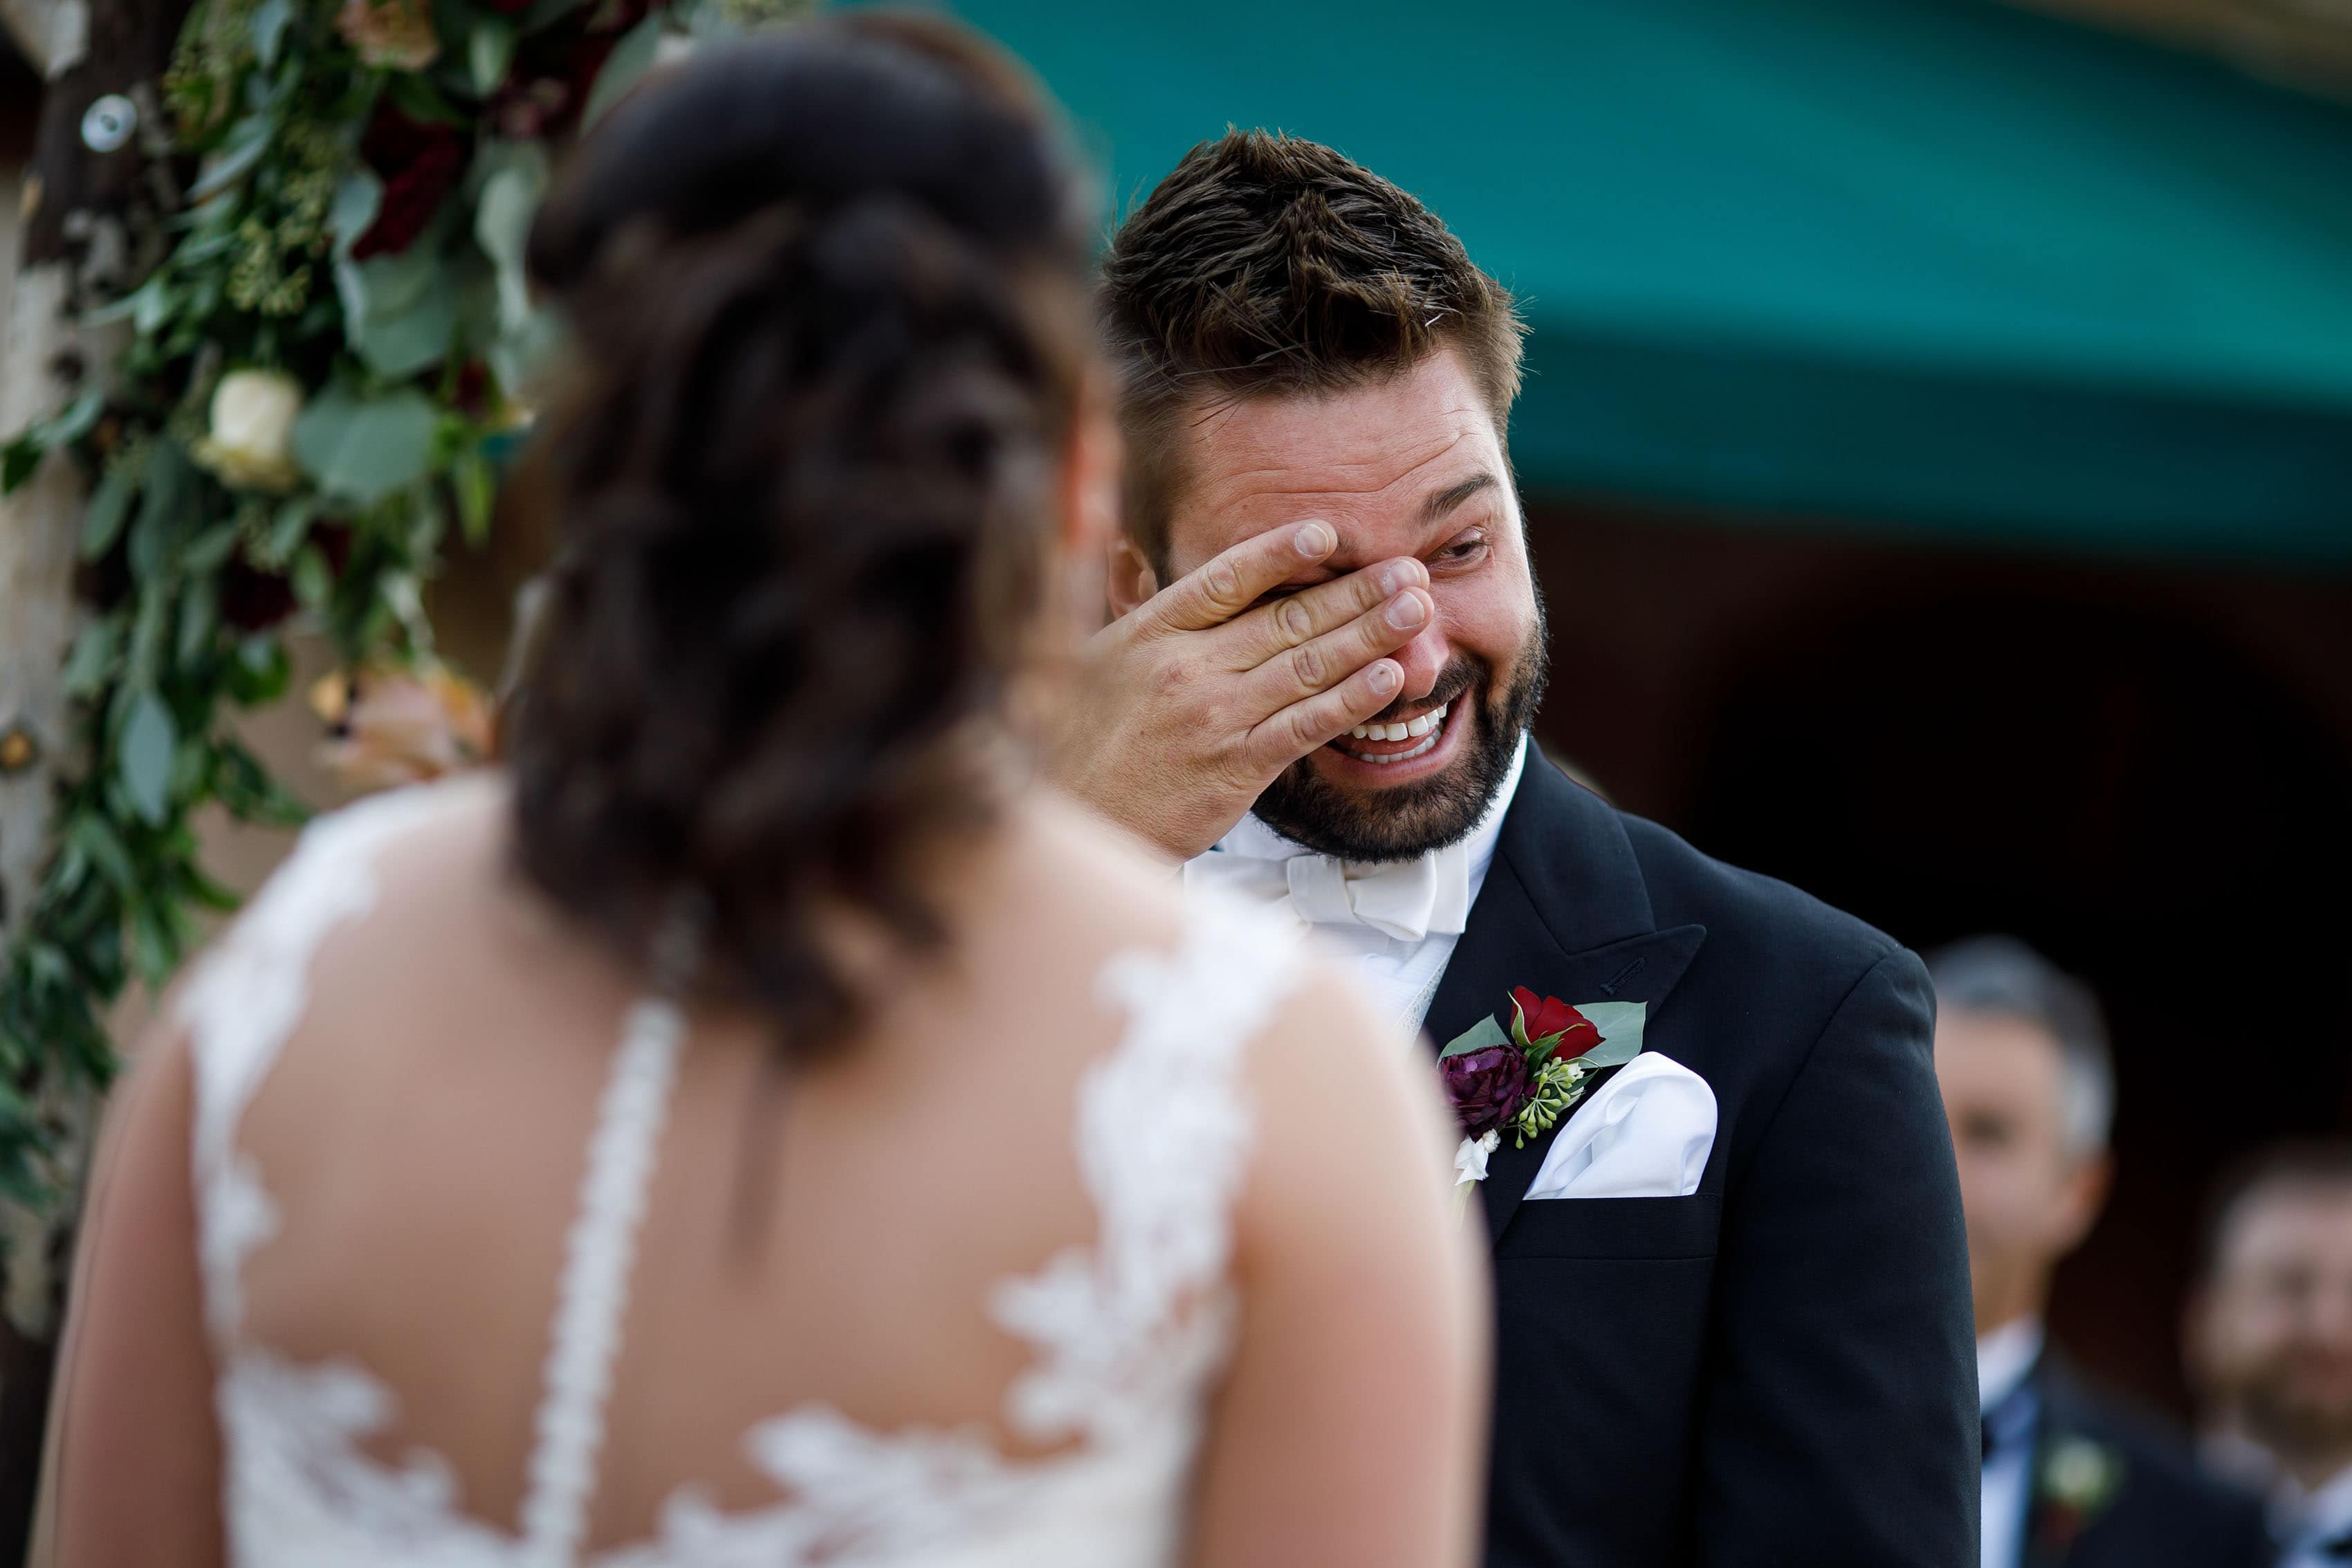 Jordan wipes away a tear during Melissa's vows